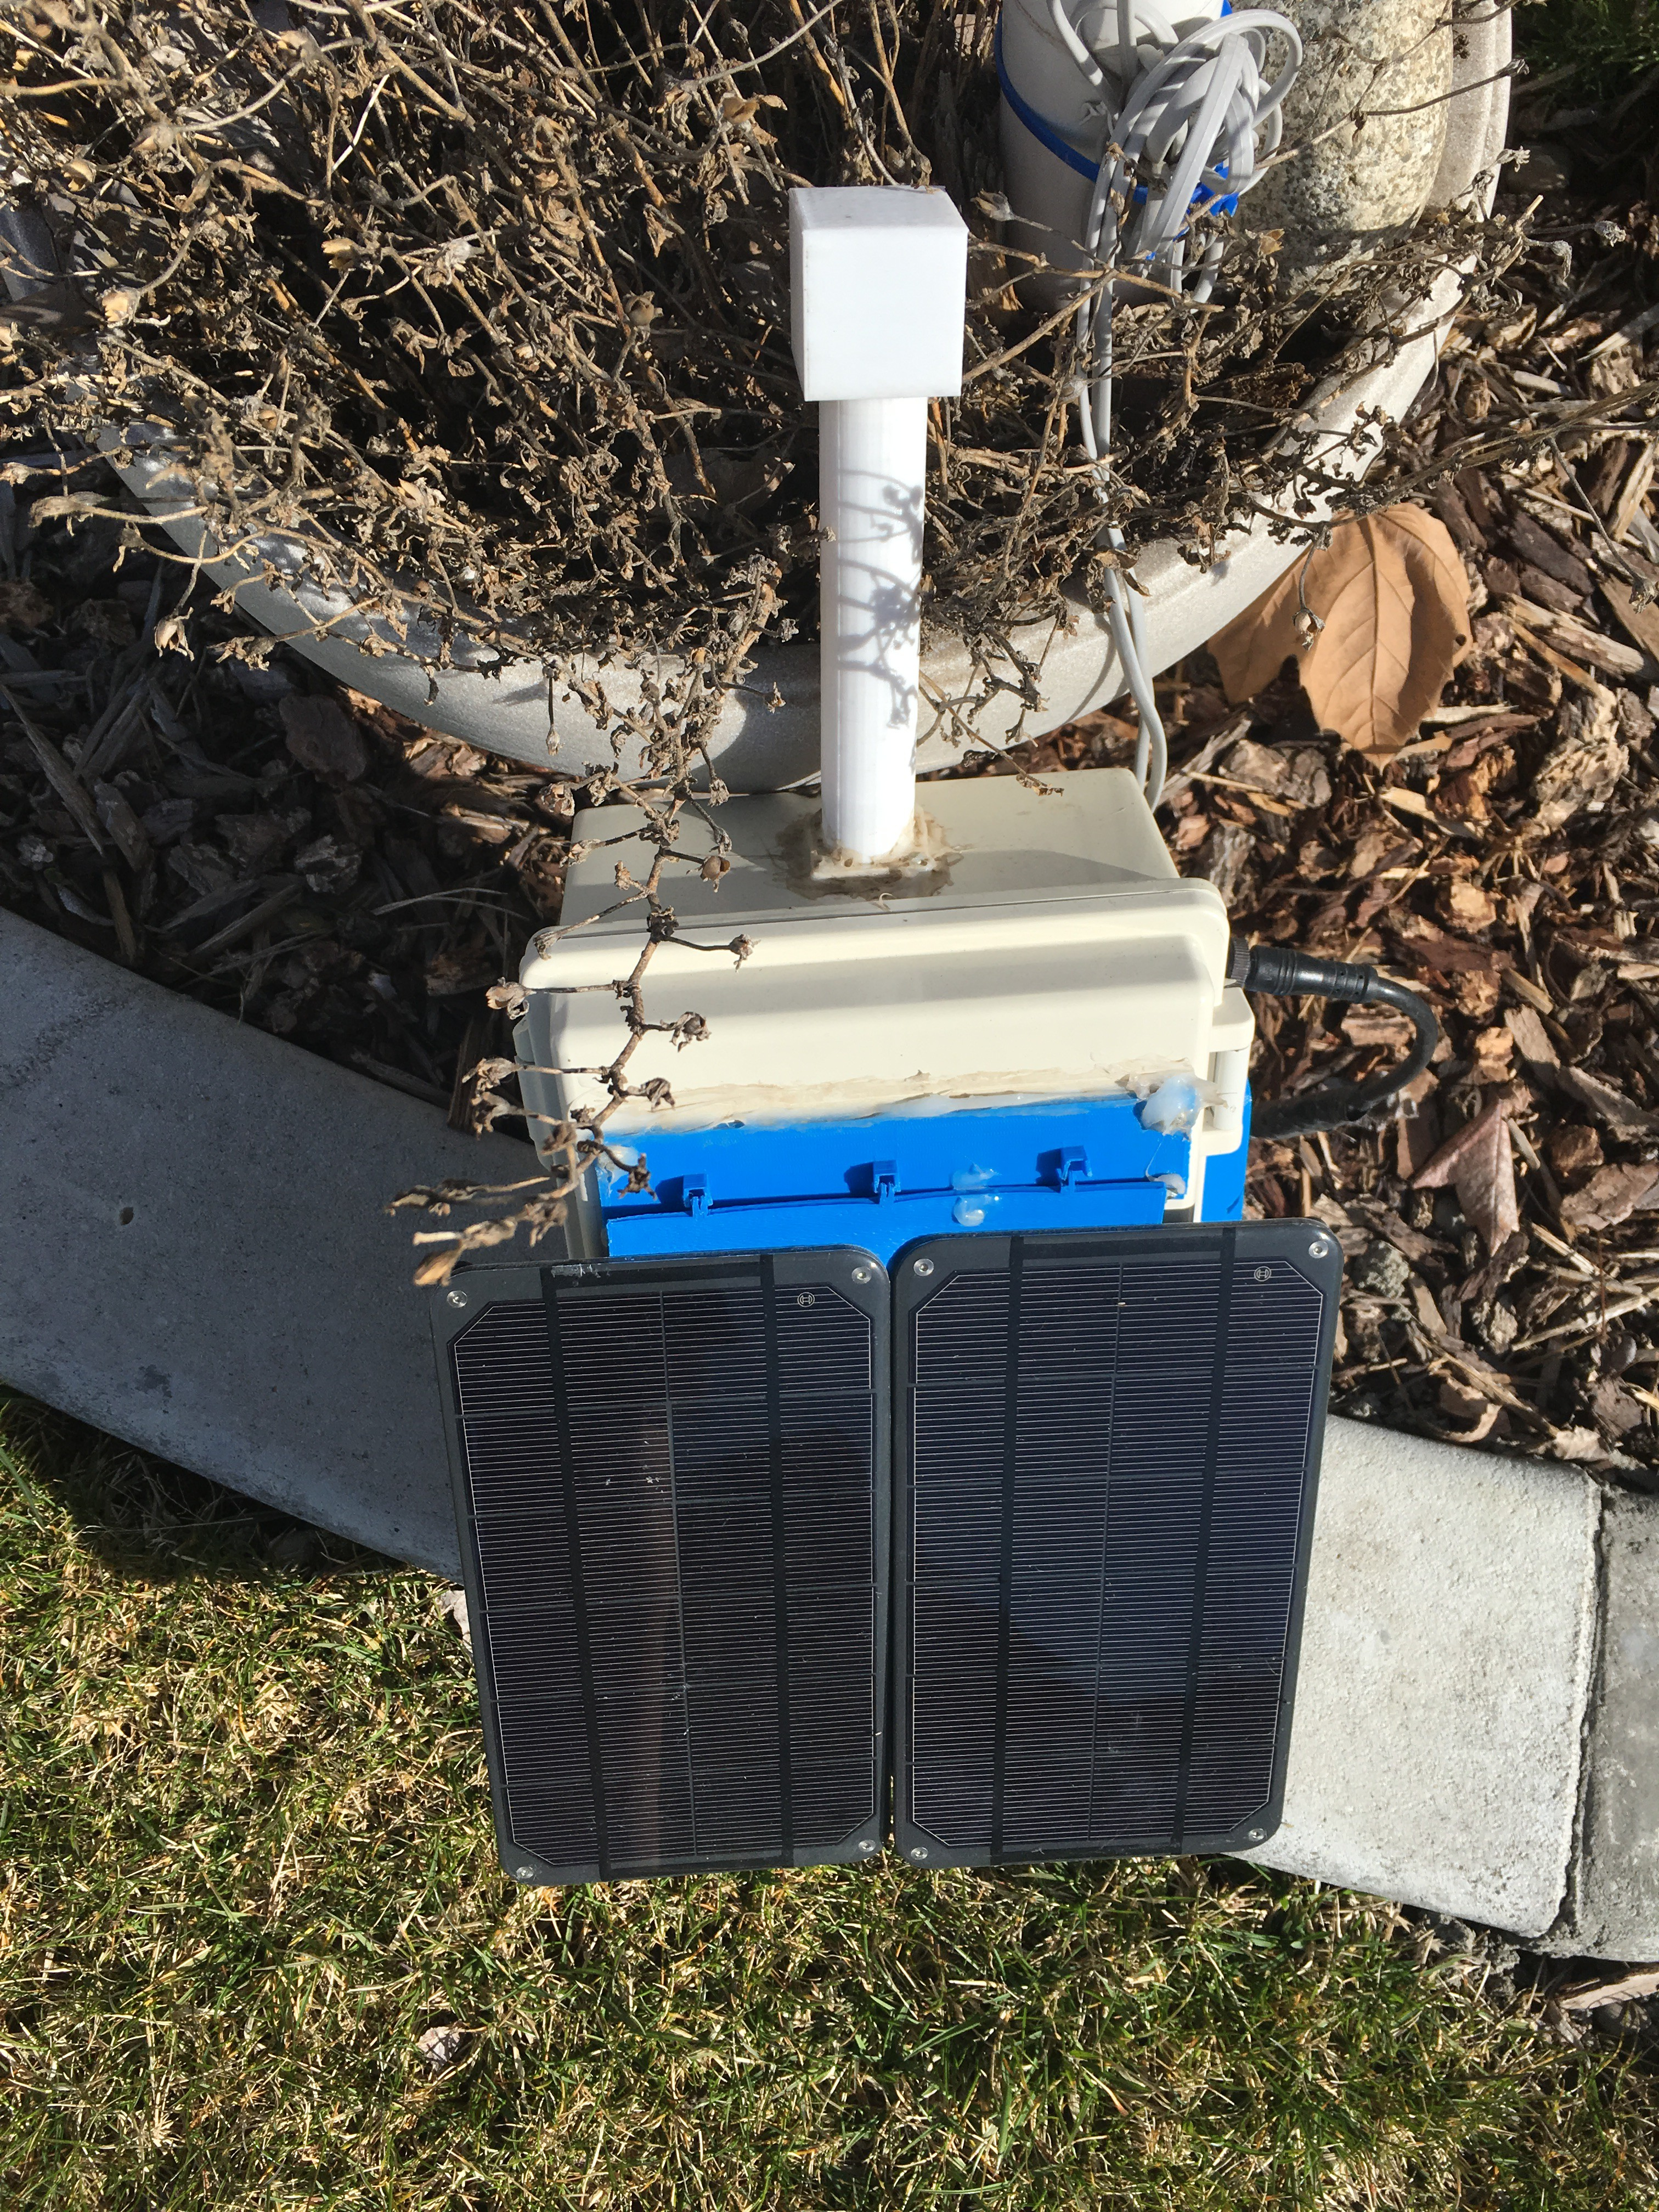 Solar Power WeatherPi Makes it Through the Winter